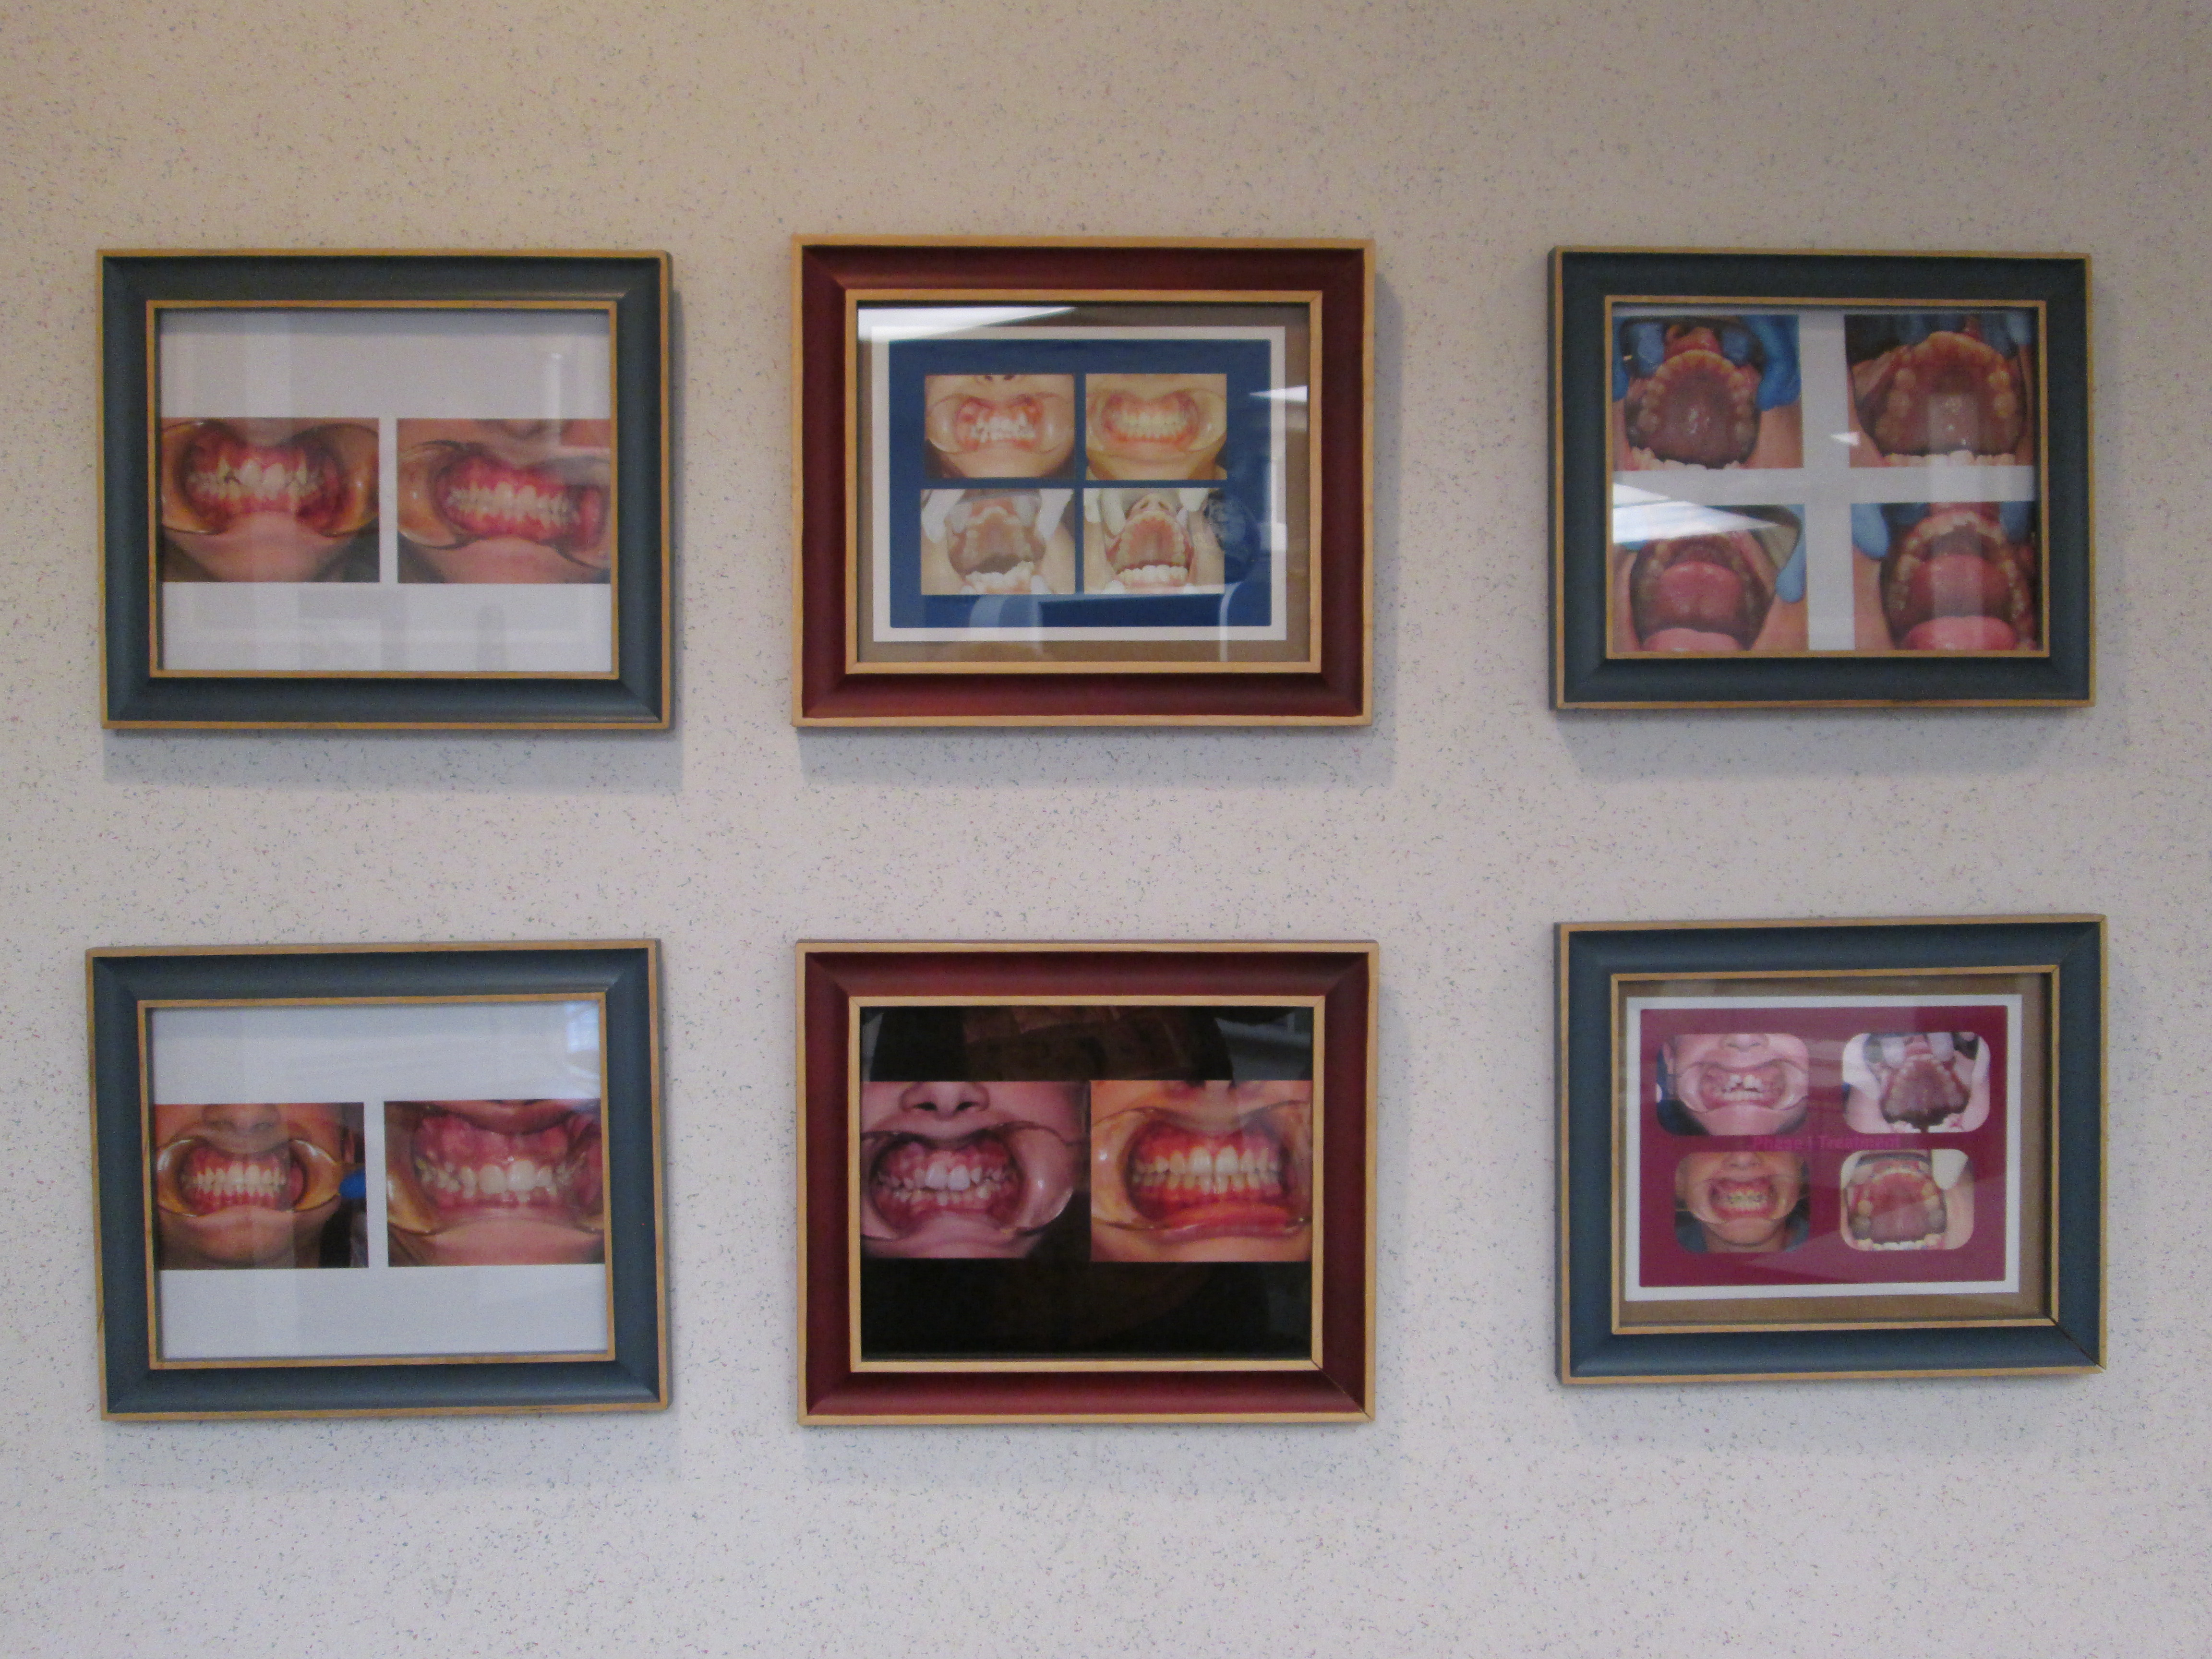 Before & After Images at Meslin Pediatric & Family Dentistry